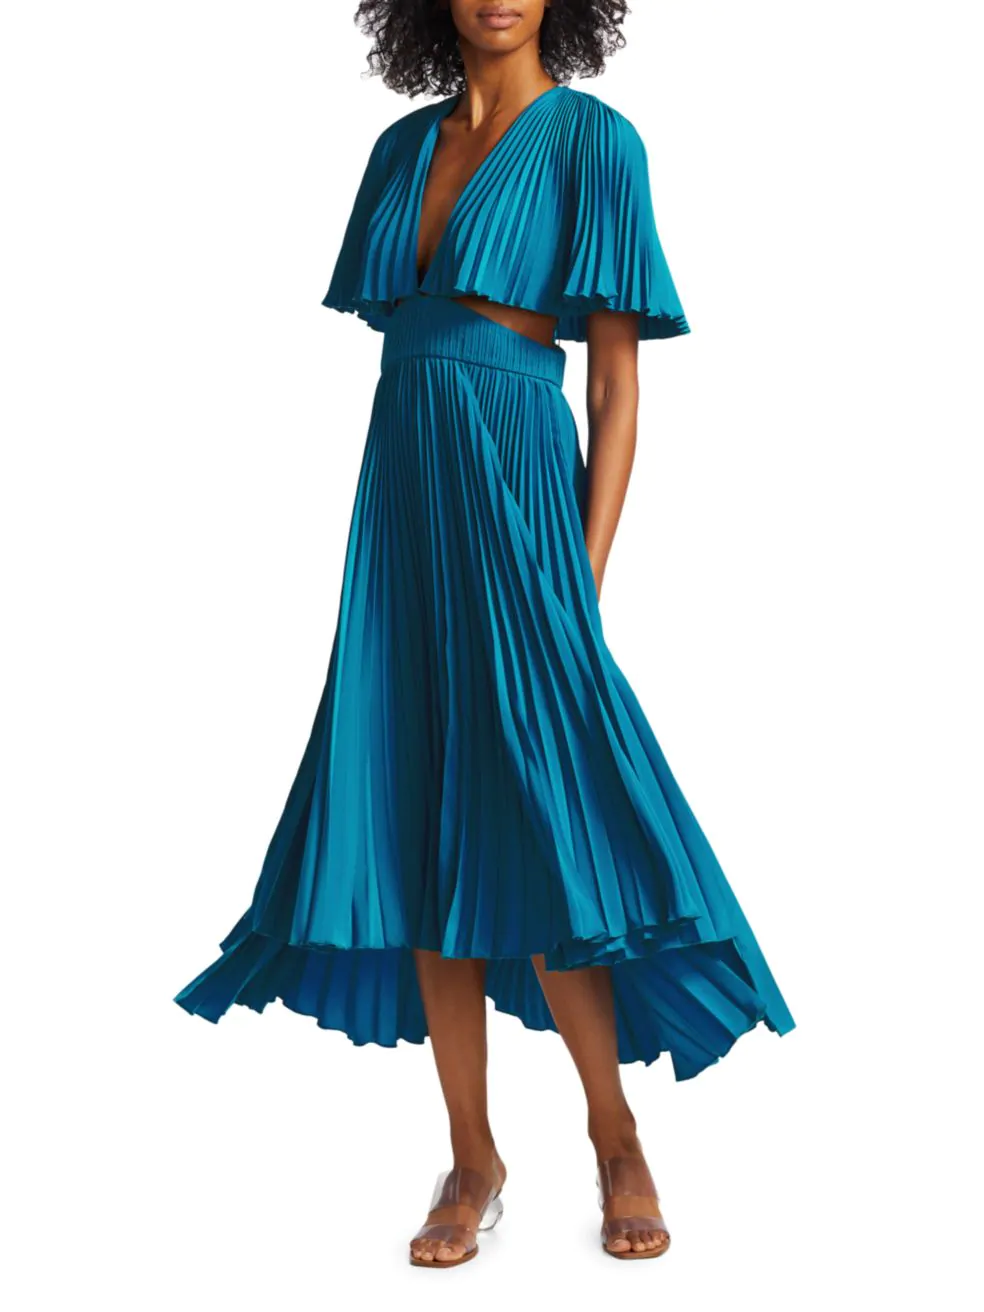 Dara Pleated Dress